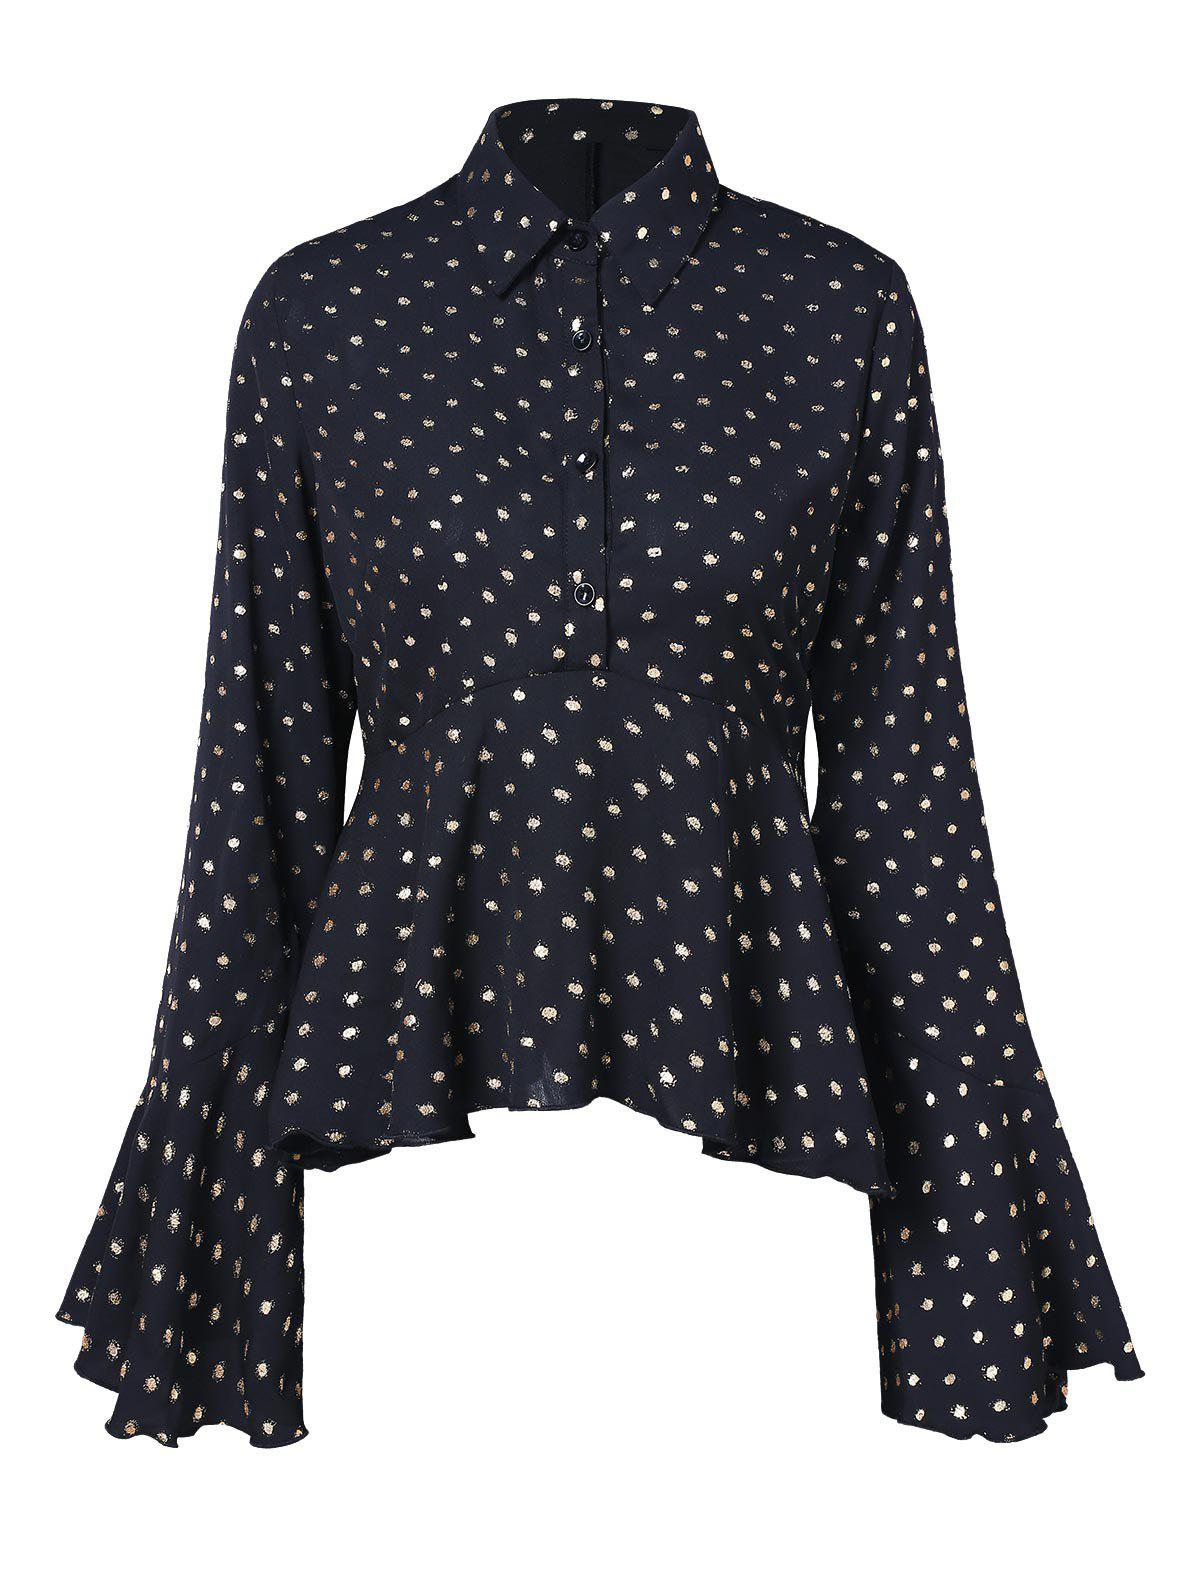 Discount Polka Dot Long Sleeve Skirted Shirt